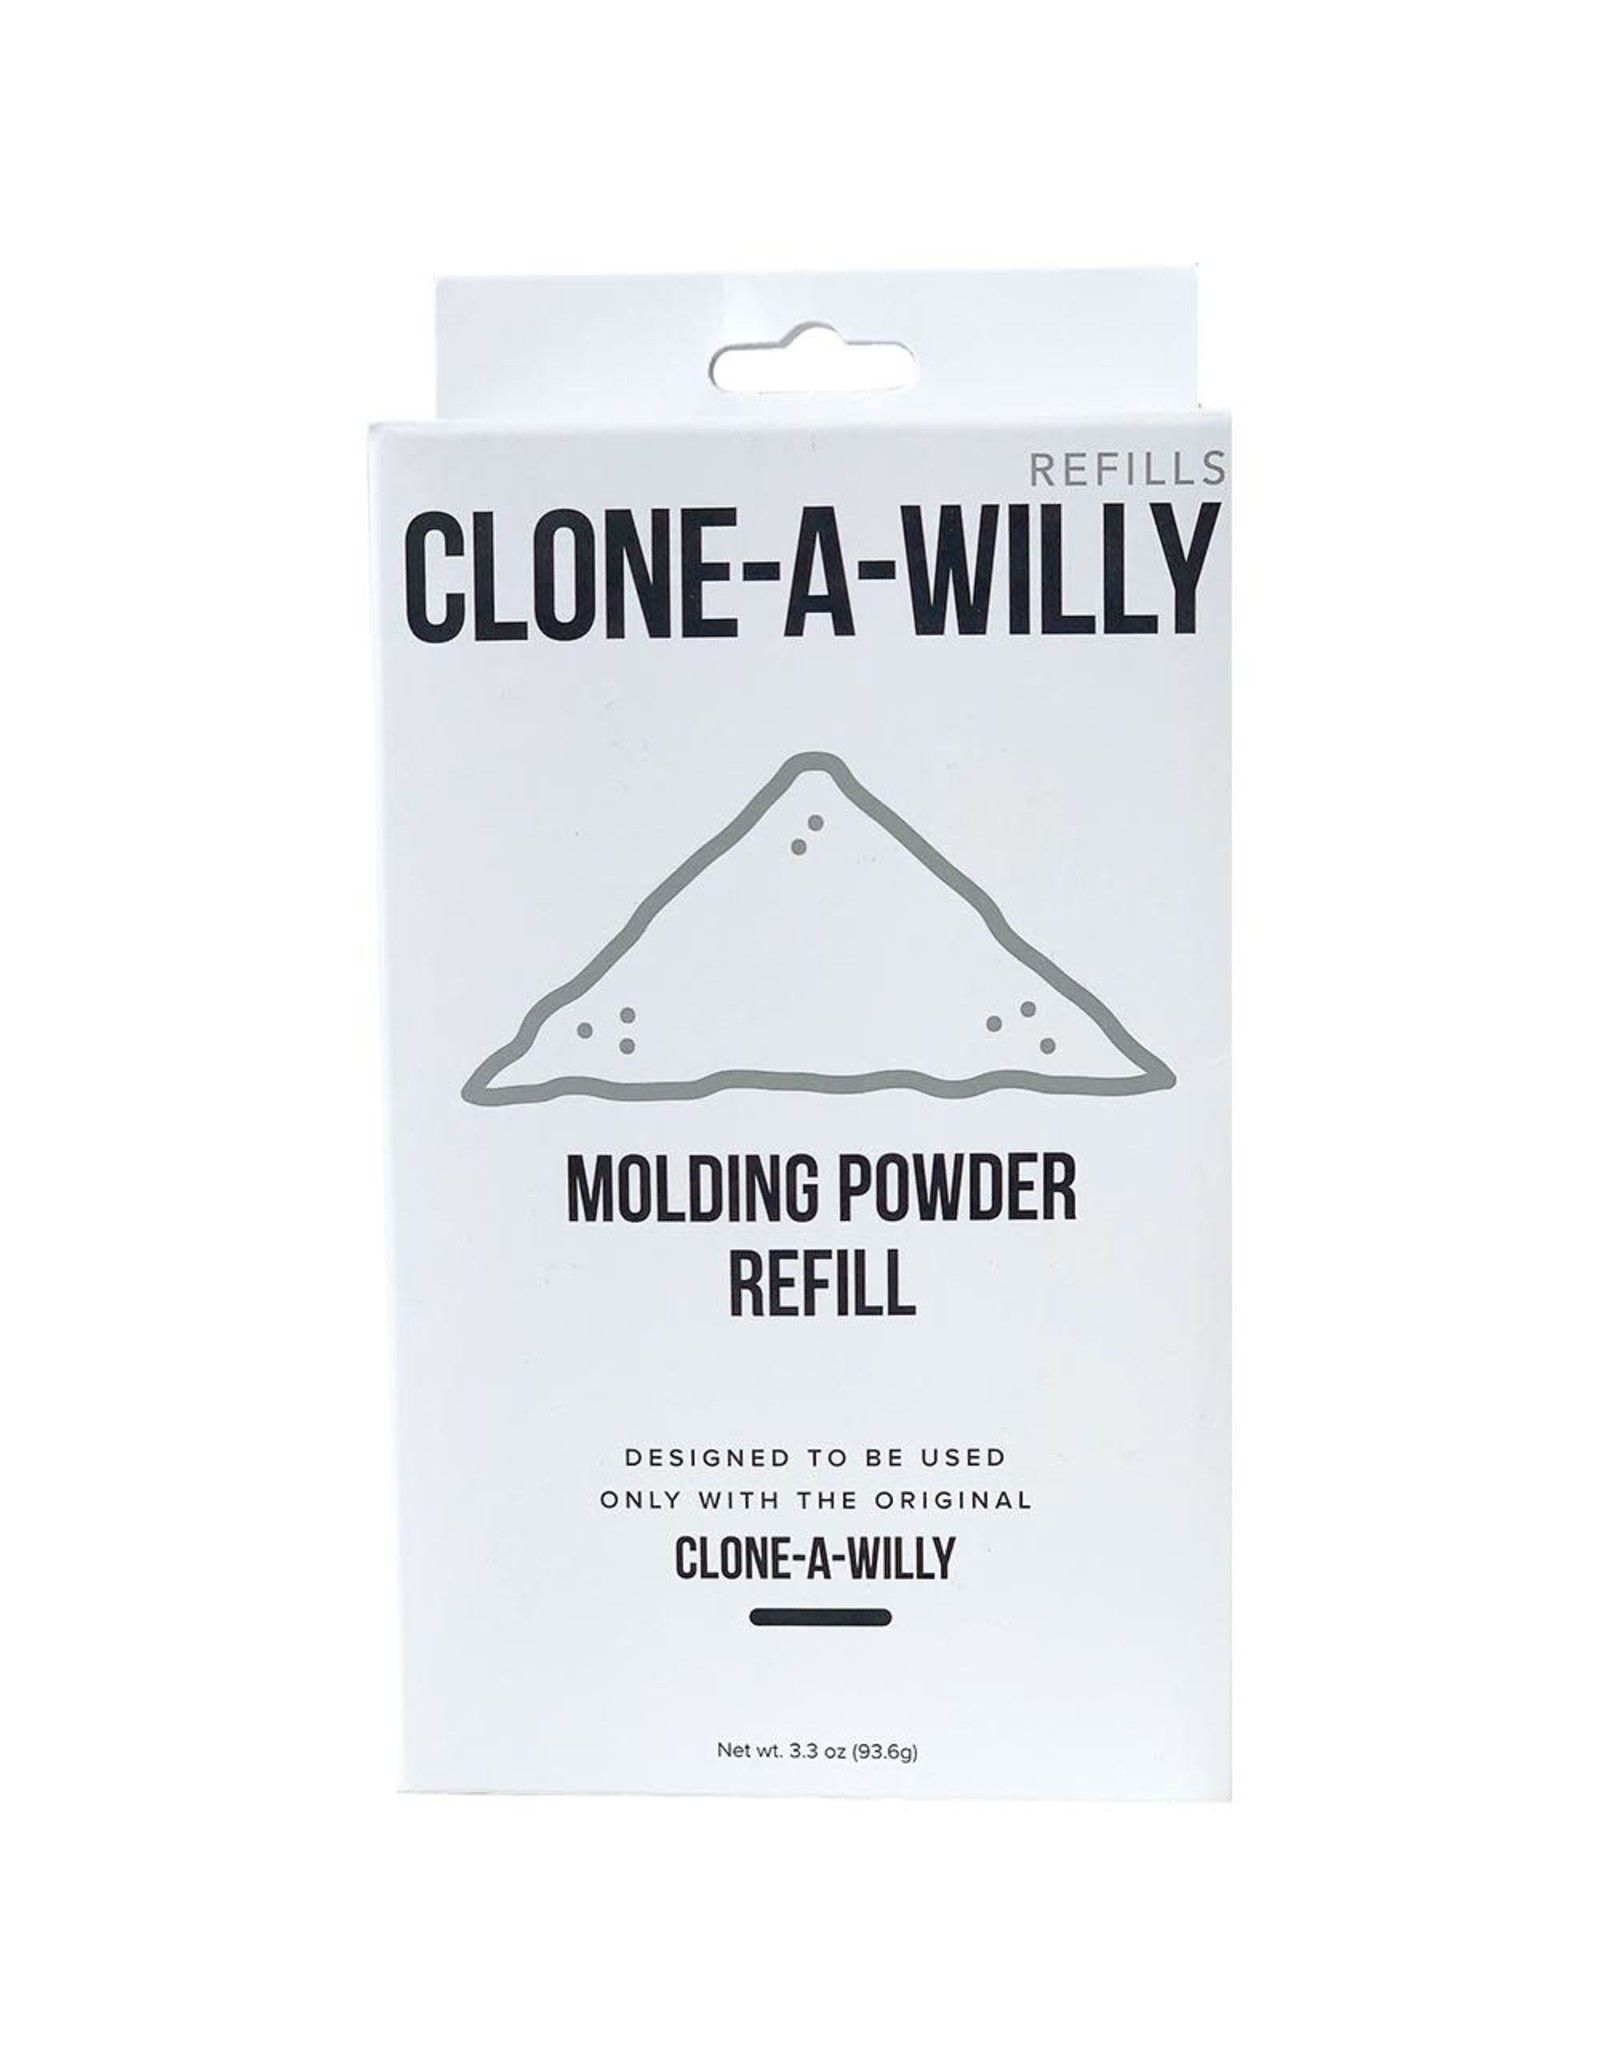 CLONE A WILLY (EMPIRE LABS) CLONE-A-WILLY REFIL MOLDING POWDER 3.3OZ